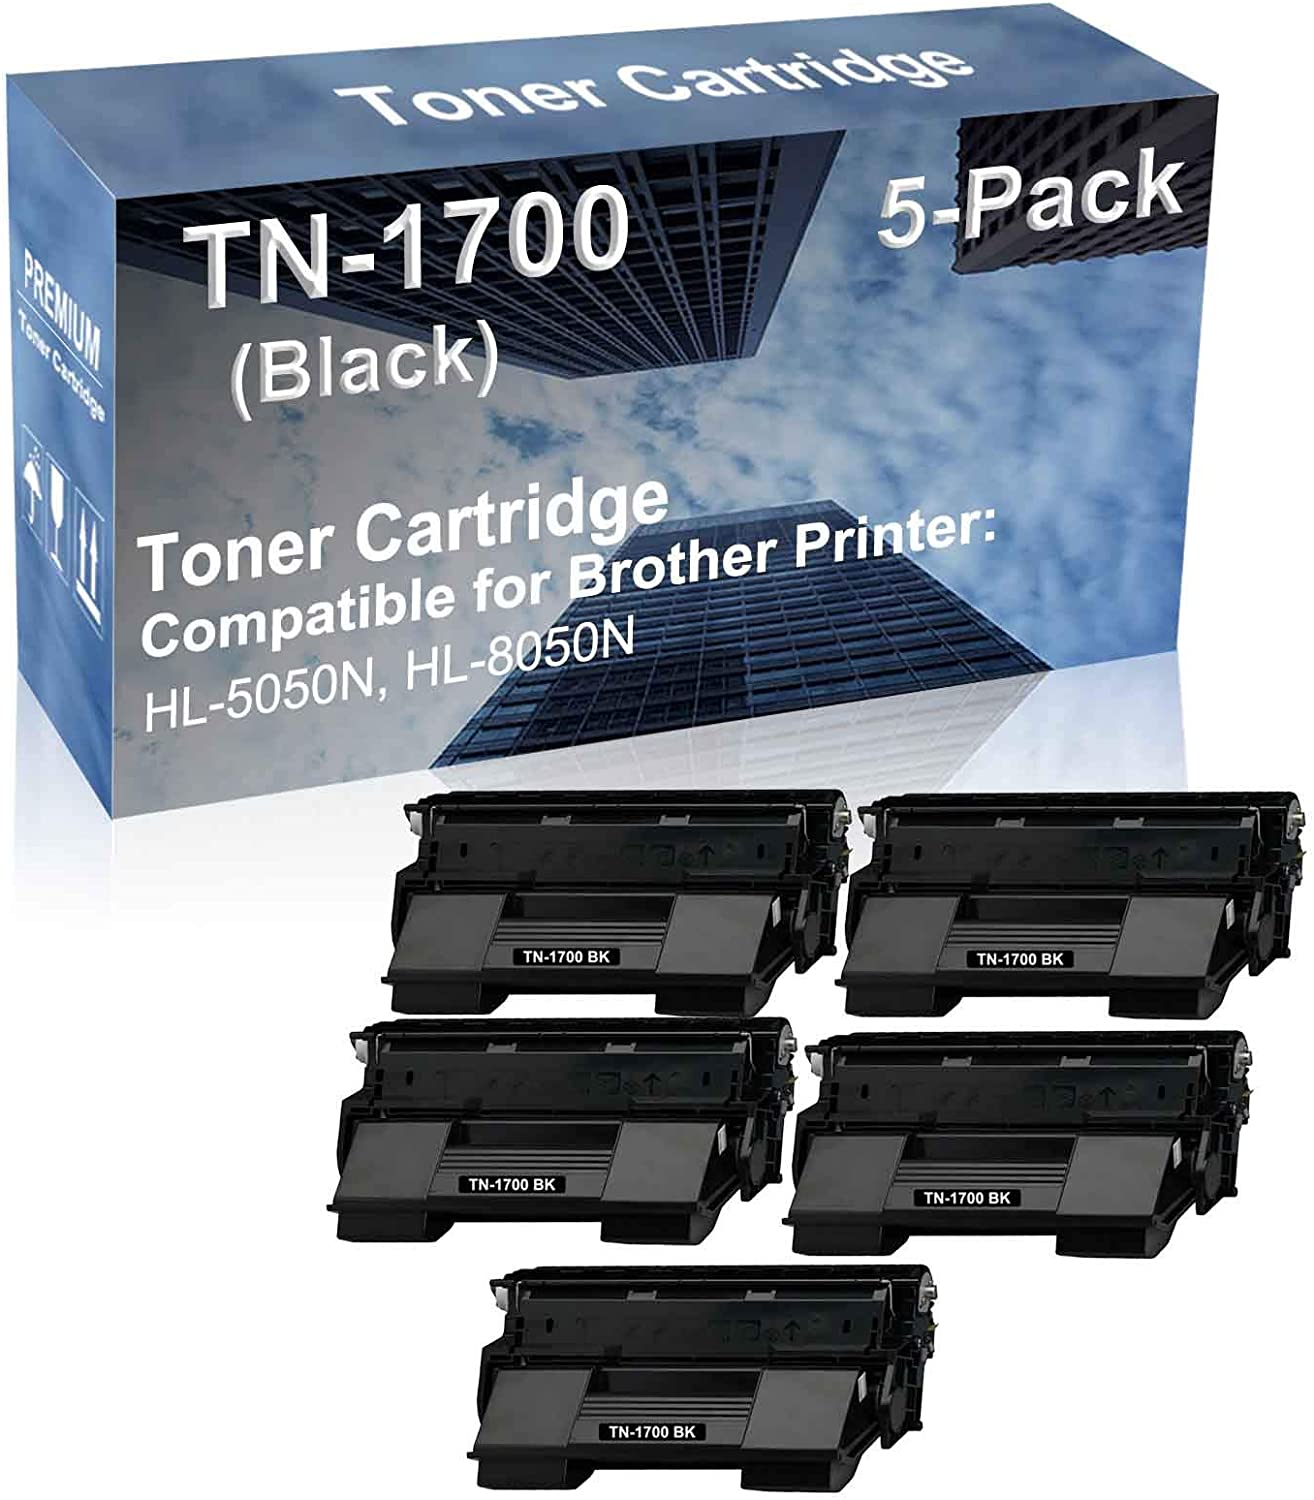 5-Pack Compatible High Yield HL-5050N, HL-8050N Printer Cartridge Replacement for Brother TN-1700 Toner Cartridge (Black)